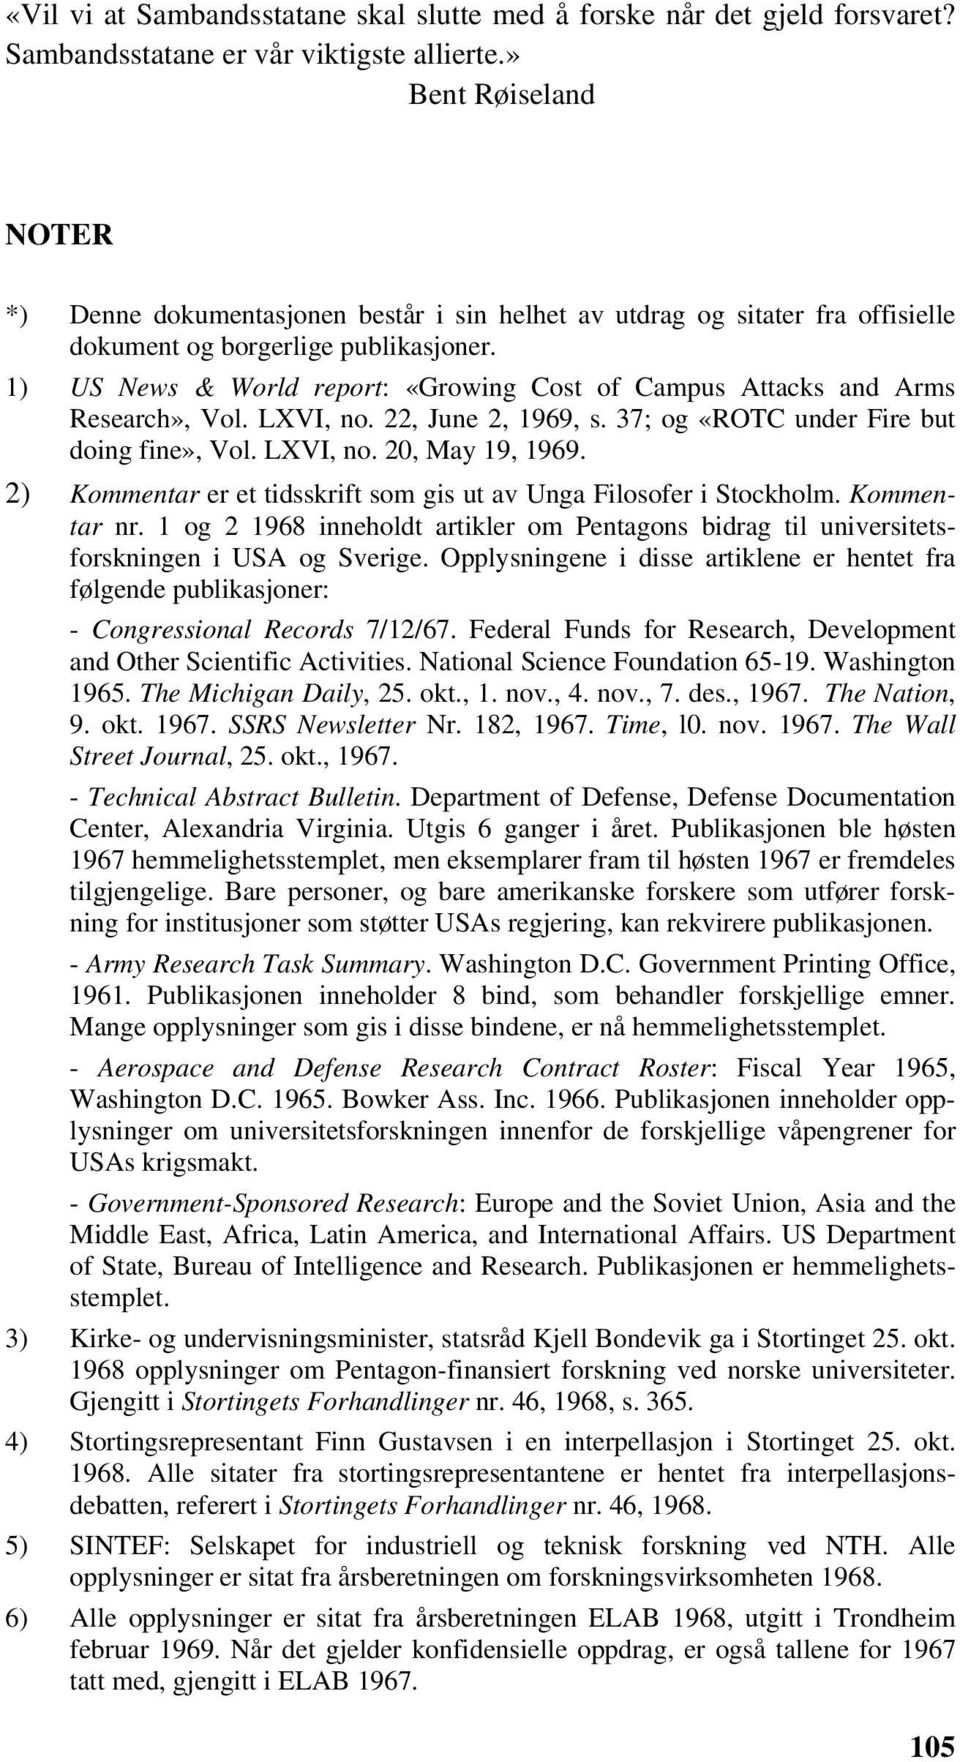 1) US News & World report: «Growing Cost of Campus Attacks and Arms Research», Vol. LXVI, no. 22, June 2, 1969, s. 37; og «ROTC under Fire but doing fine», Vol. LXVI, no. 20, May 19, 1969.